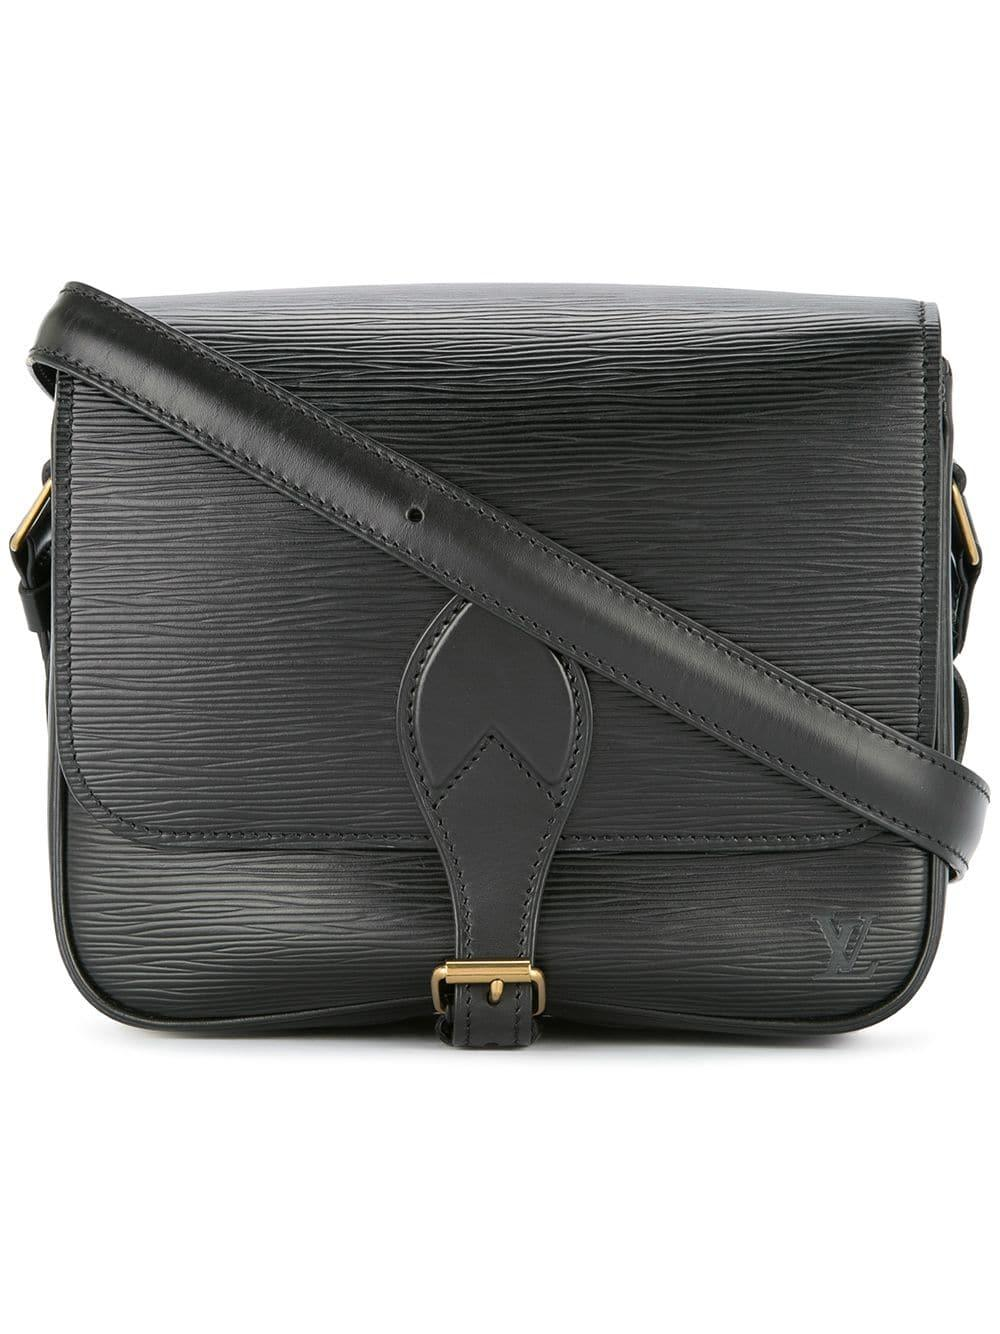 adf3f666a2 Louis Vuitton Pre-Owned Cartouchiere Cross Body Shoulder Bag - Black ...